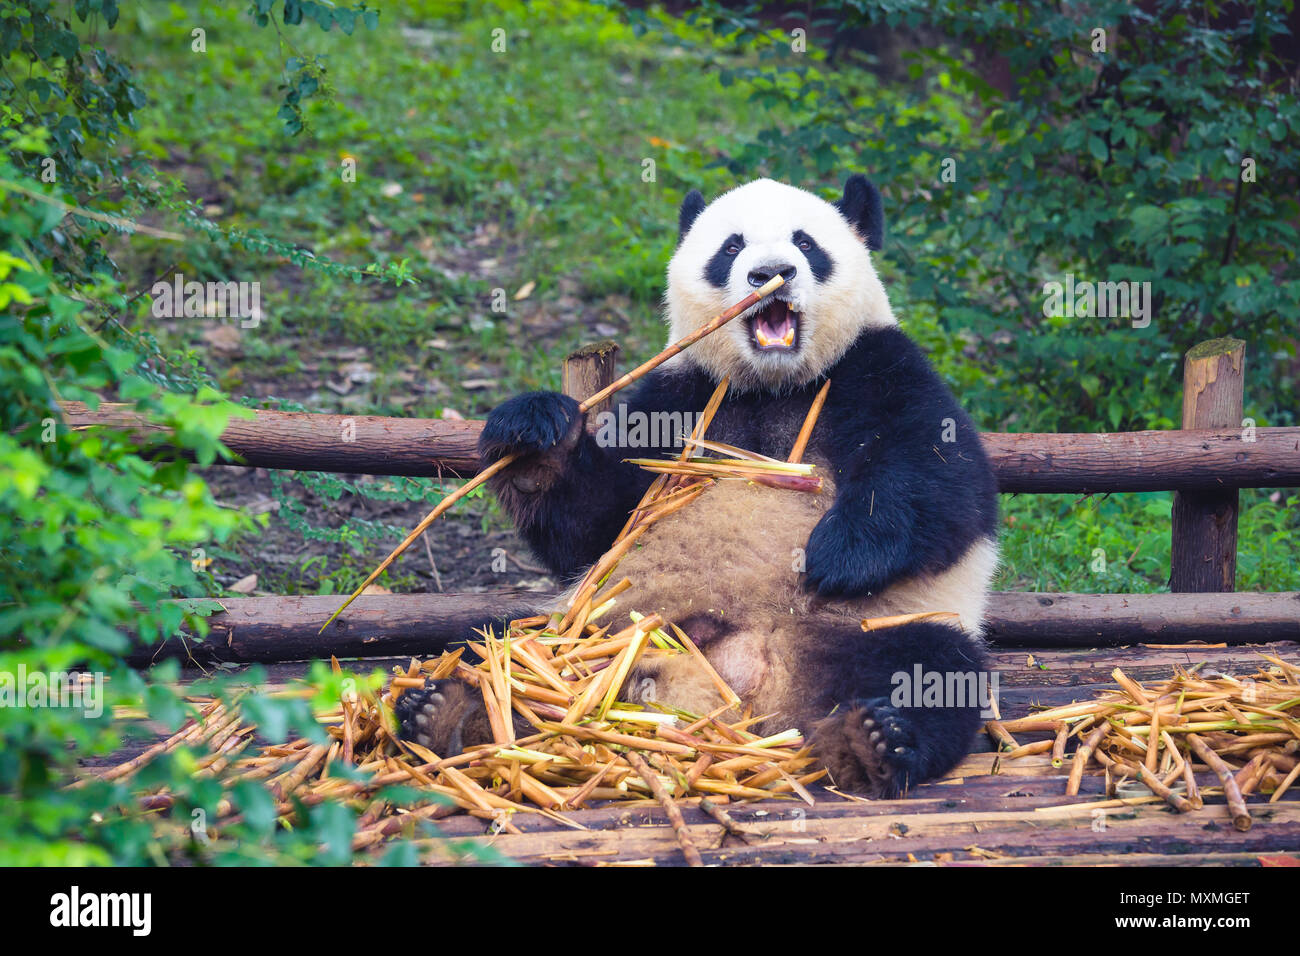 Giant Panda eating bamboo lying down on wood in Chengdu during day , Sichuan Province, China - Stock Image